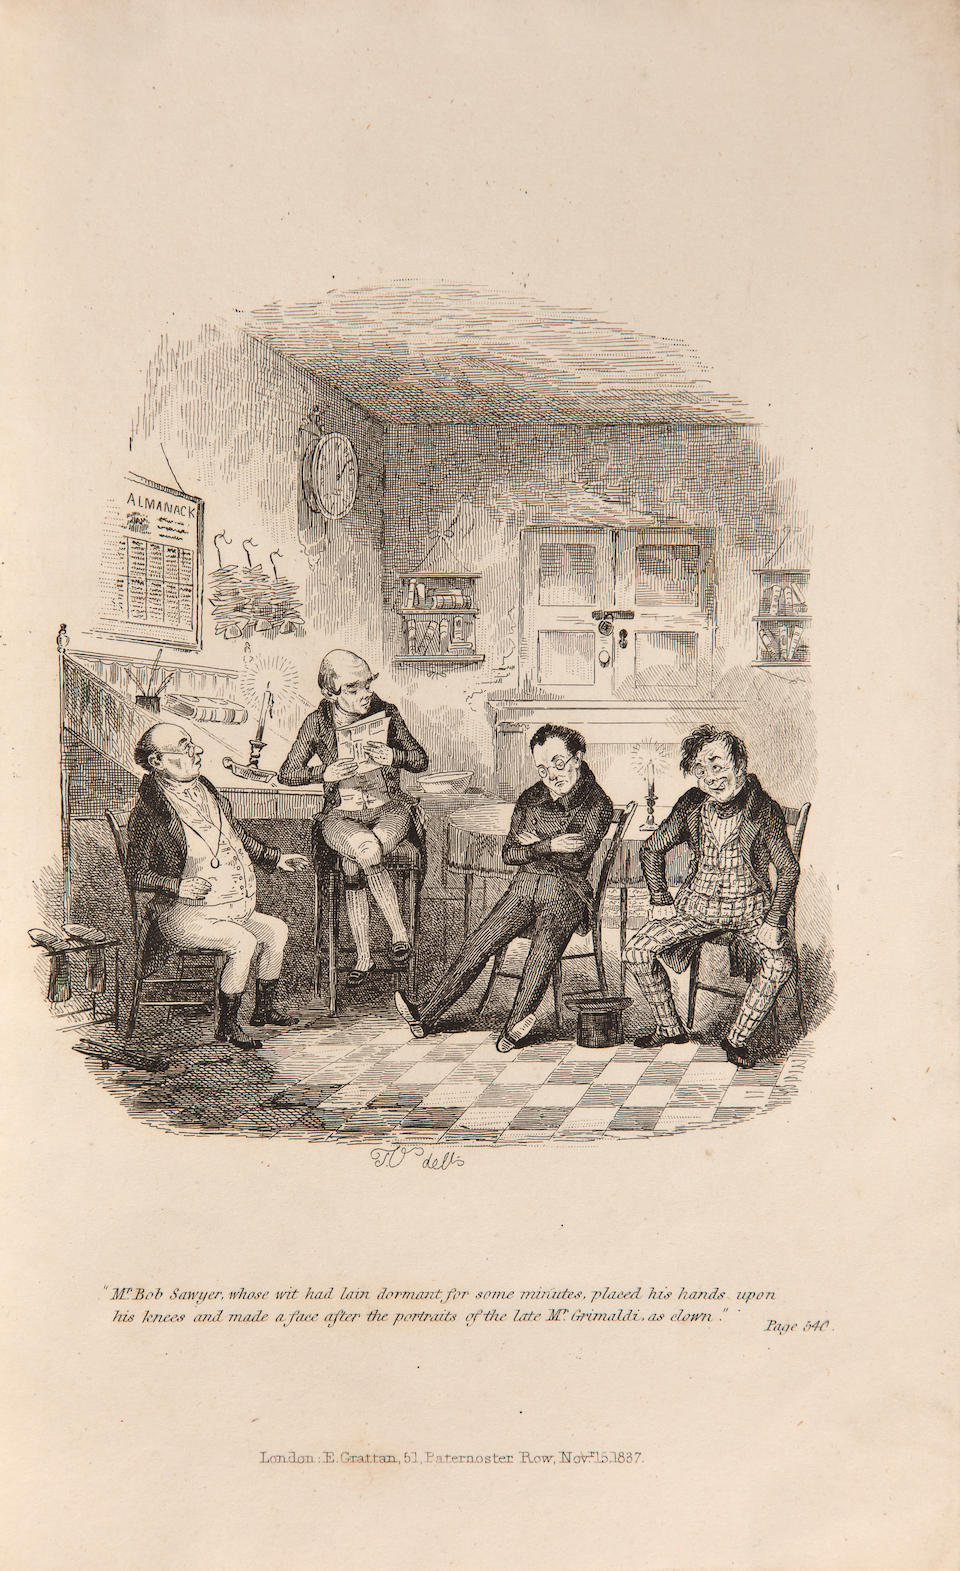 [DICKENS, CHARLES.] [ONWHYN, THOMAS]. Illustrations to the Pickwick Club by Sam Weller. London: E. Grattan, 1837.